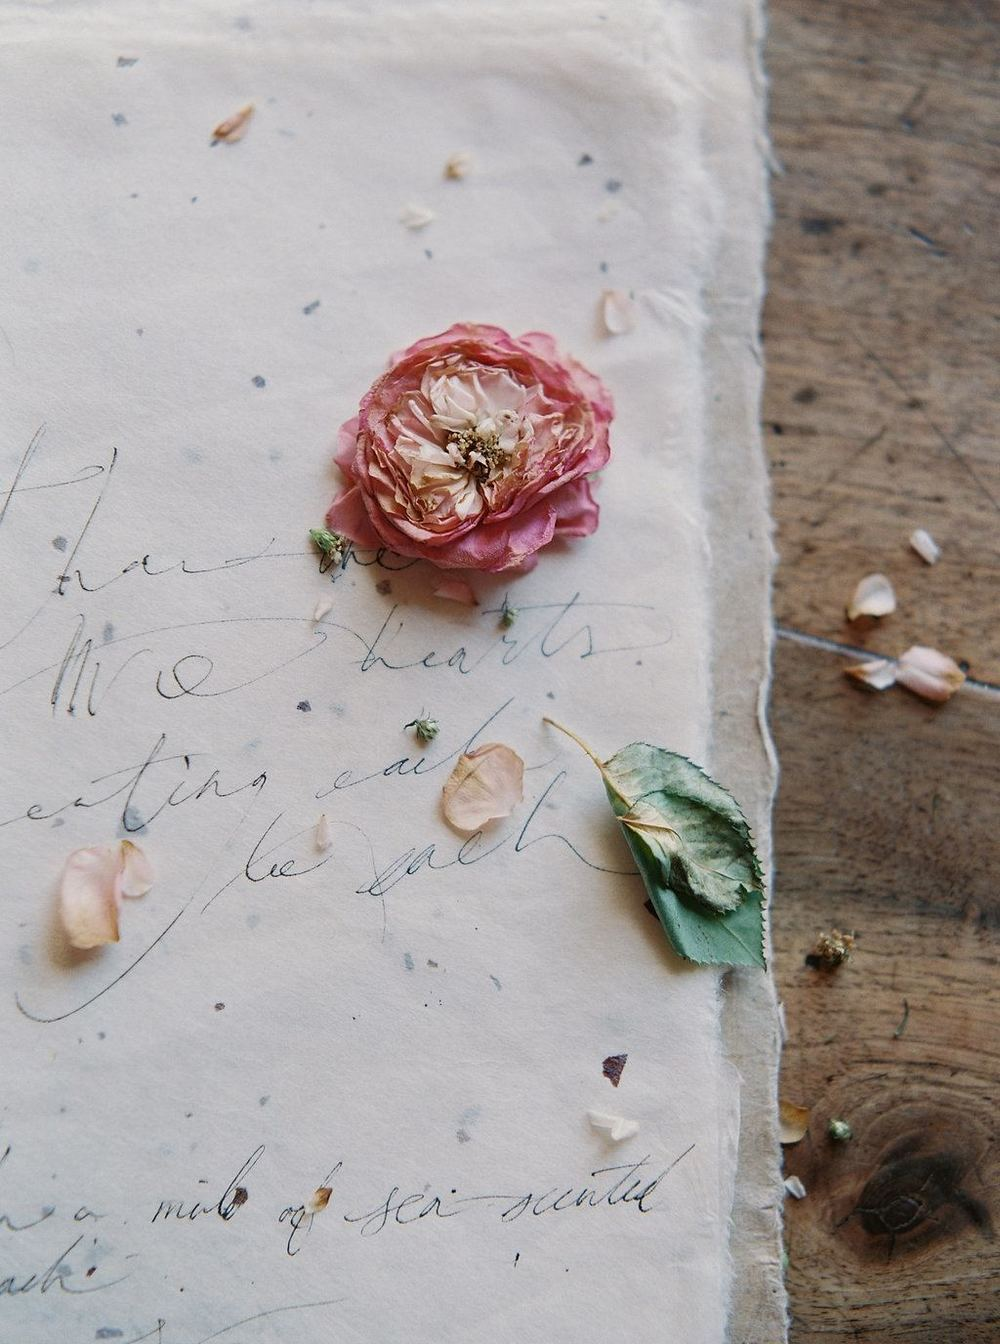 17-romantic-wedding-calligrapher-tara-spencer-wedding-sparrow.jpg